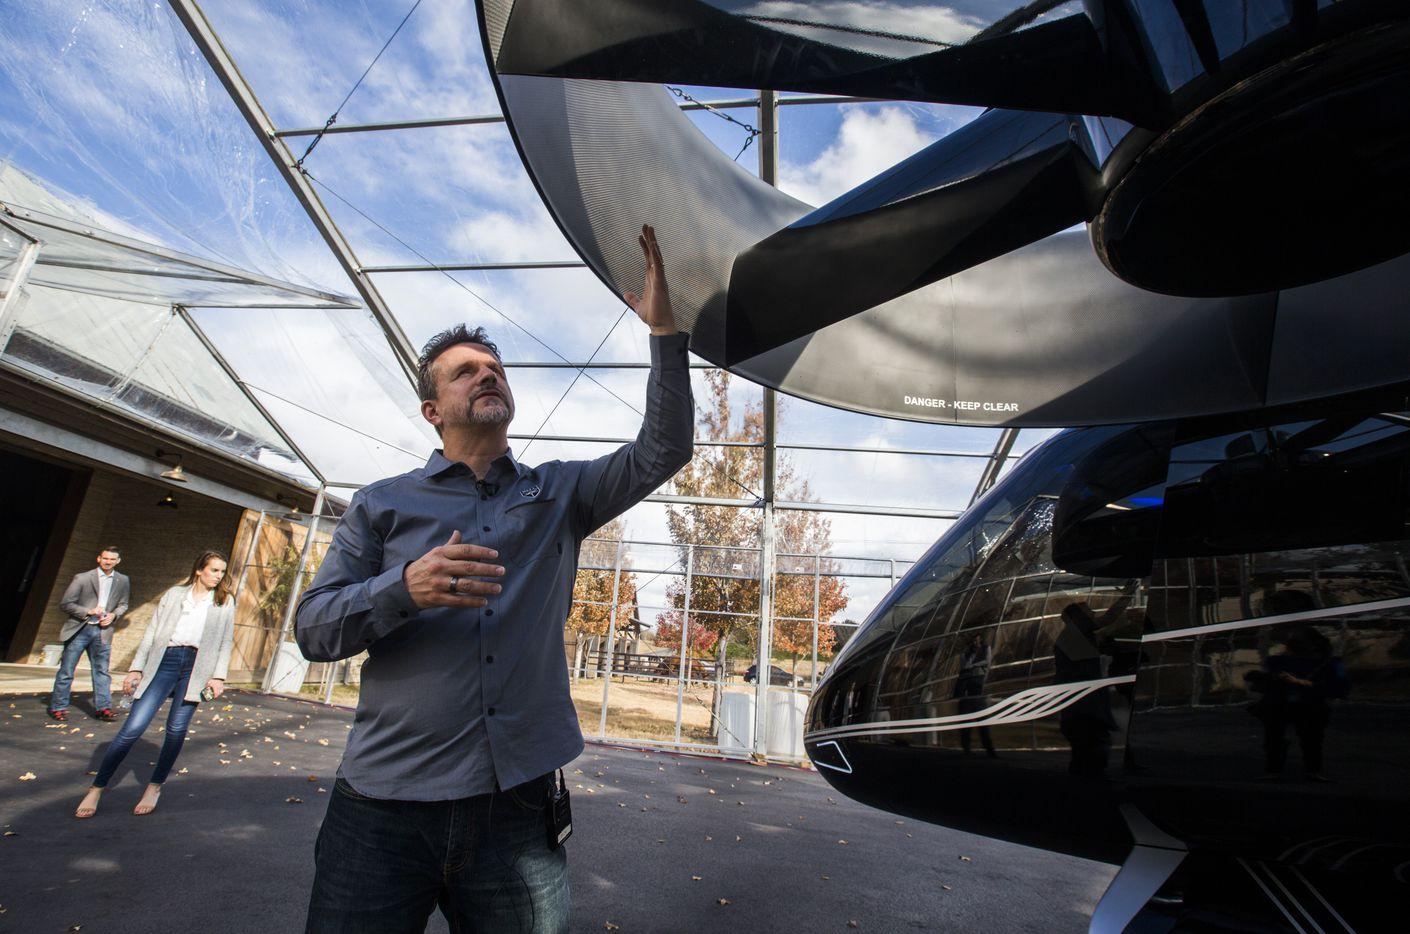 Uber is working with several companies that are developing air taxis, including Fort Worth-based helicopter maker Bell. Scott Drennan, vice president of innovation at Bell, showed off a prototype of a Bell Nexus air taxi during the Texas UP Summit. (Ashley Landis/The Dallas Morning News)